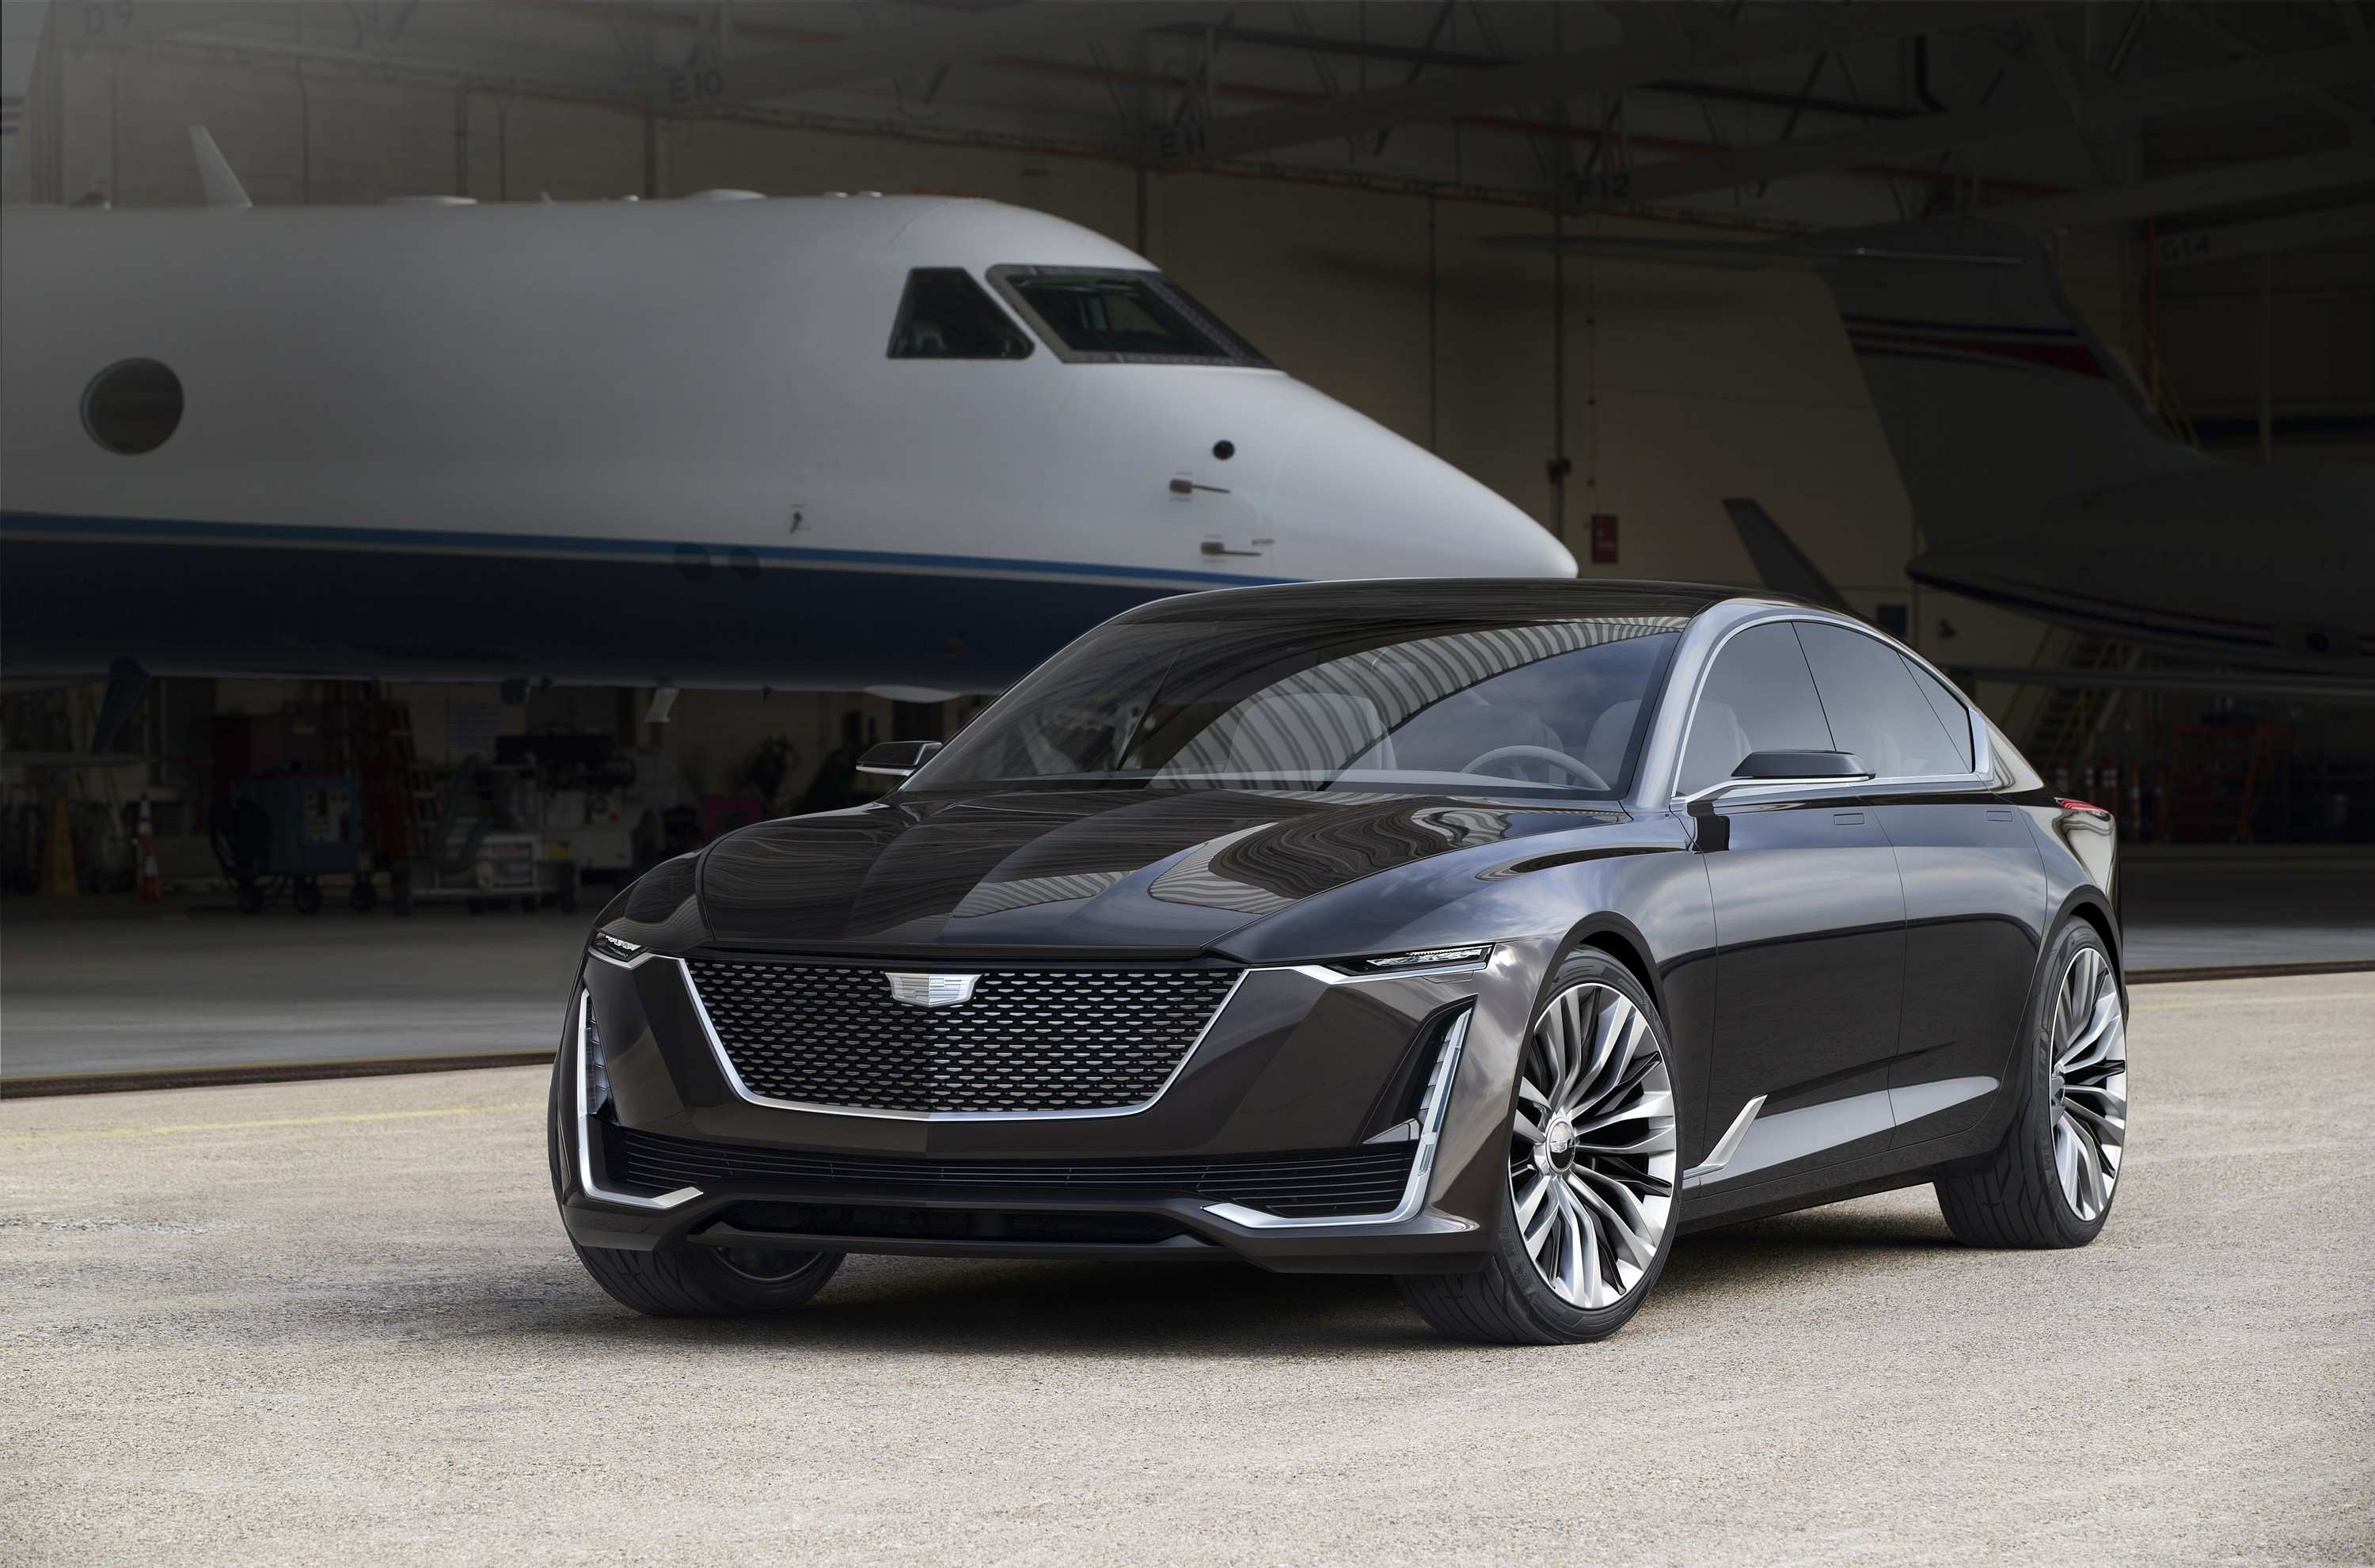 74 Concept of 2020 Cadillac Ats Picture for 2020 Cadillac Ats